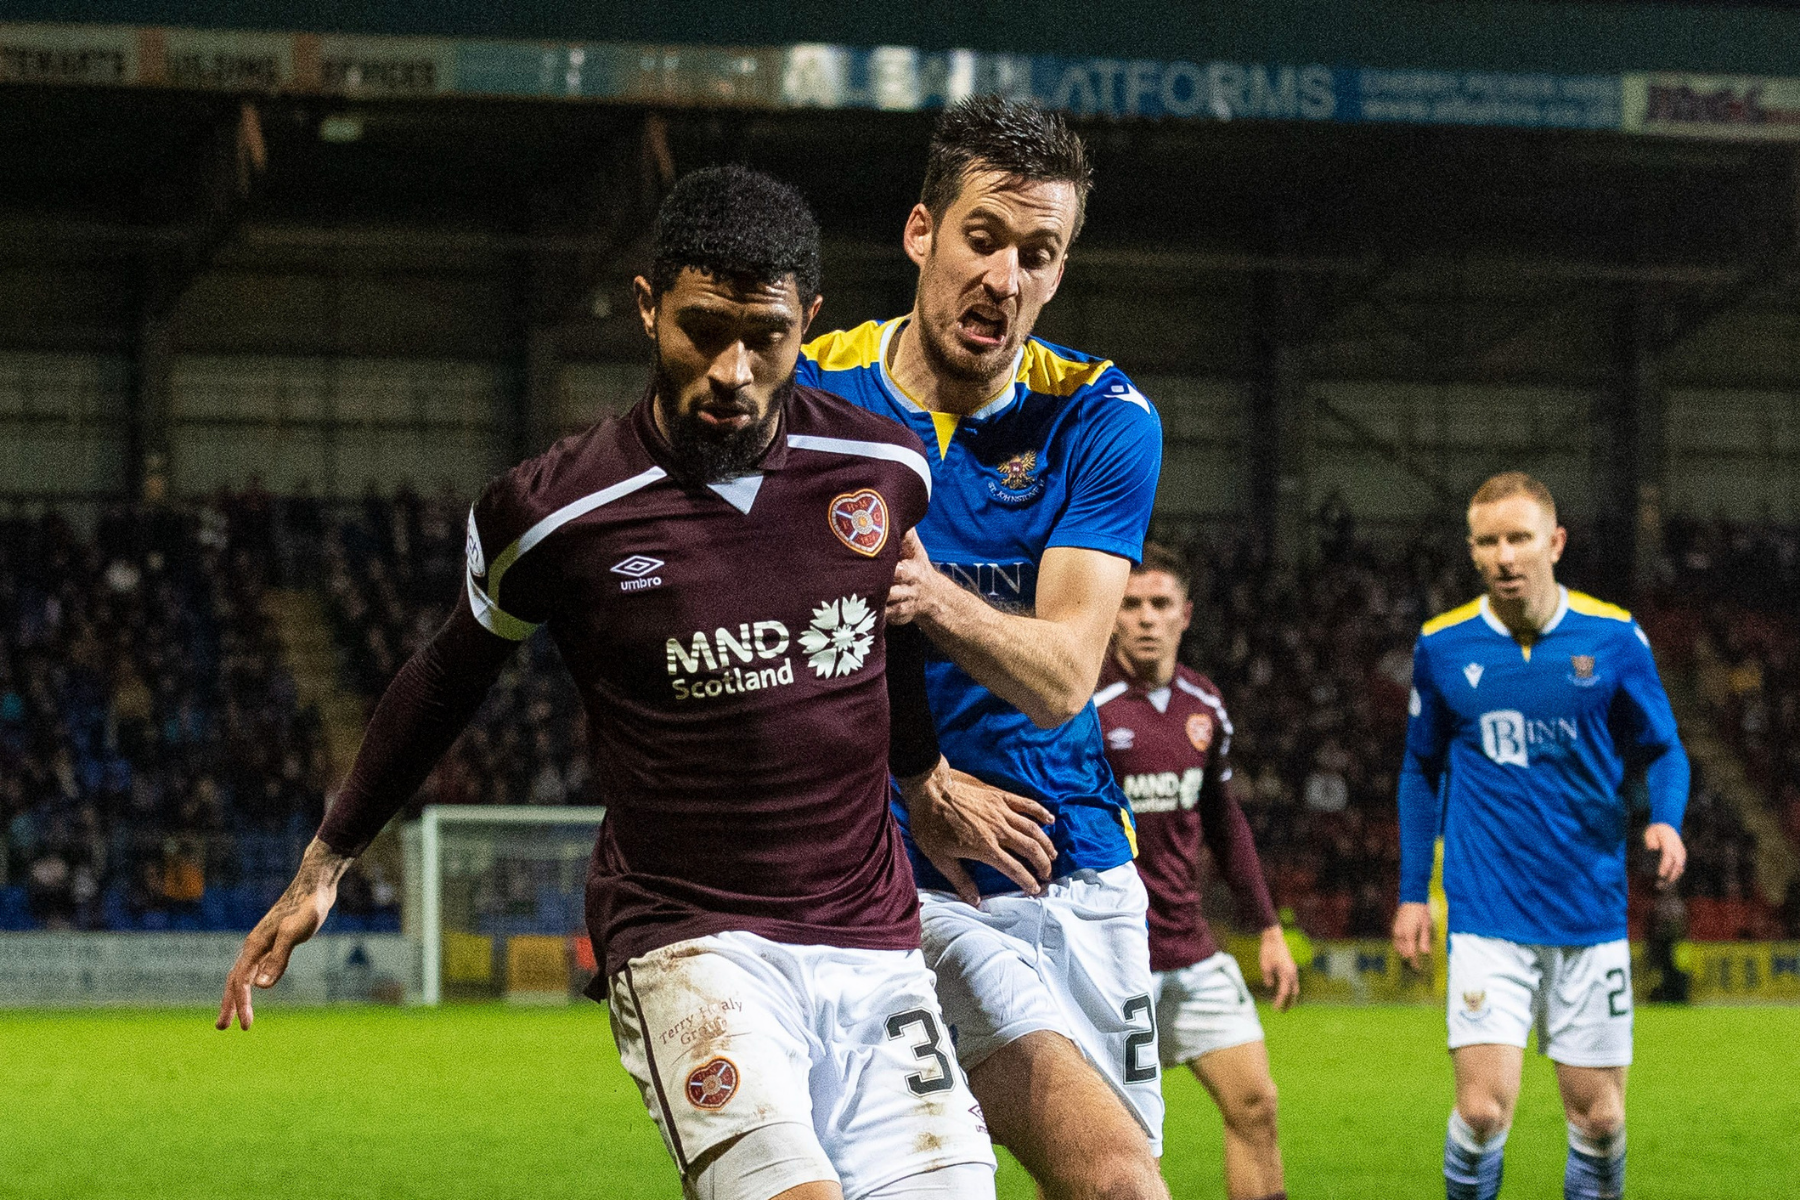 St Johnstone 1 Hearts 1:  Jambos rue missed chance to gain ground on Rangers